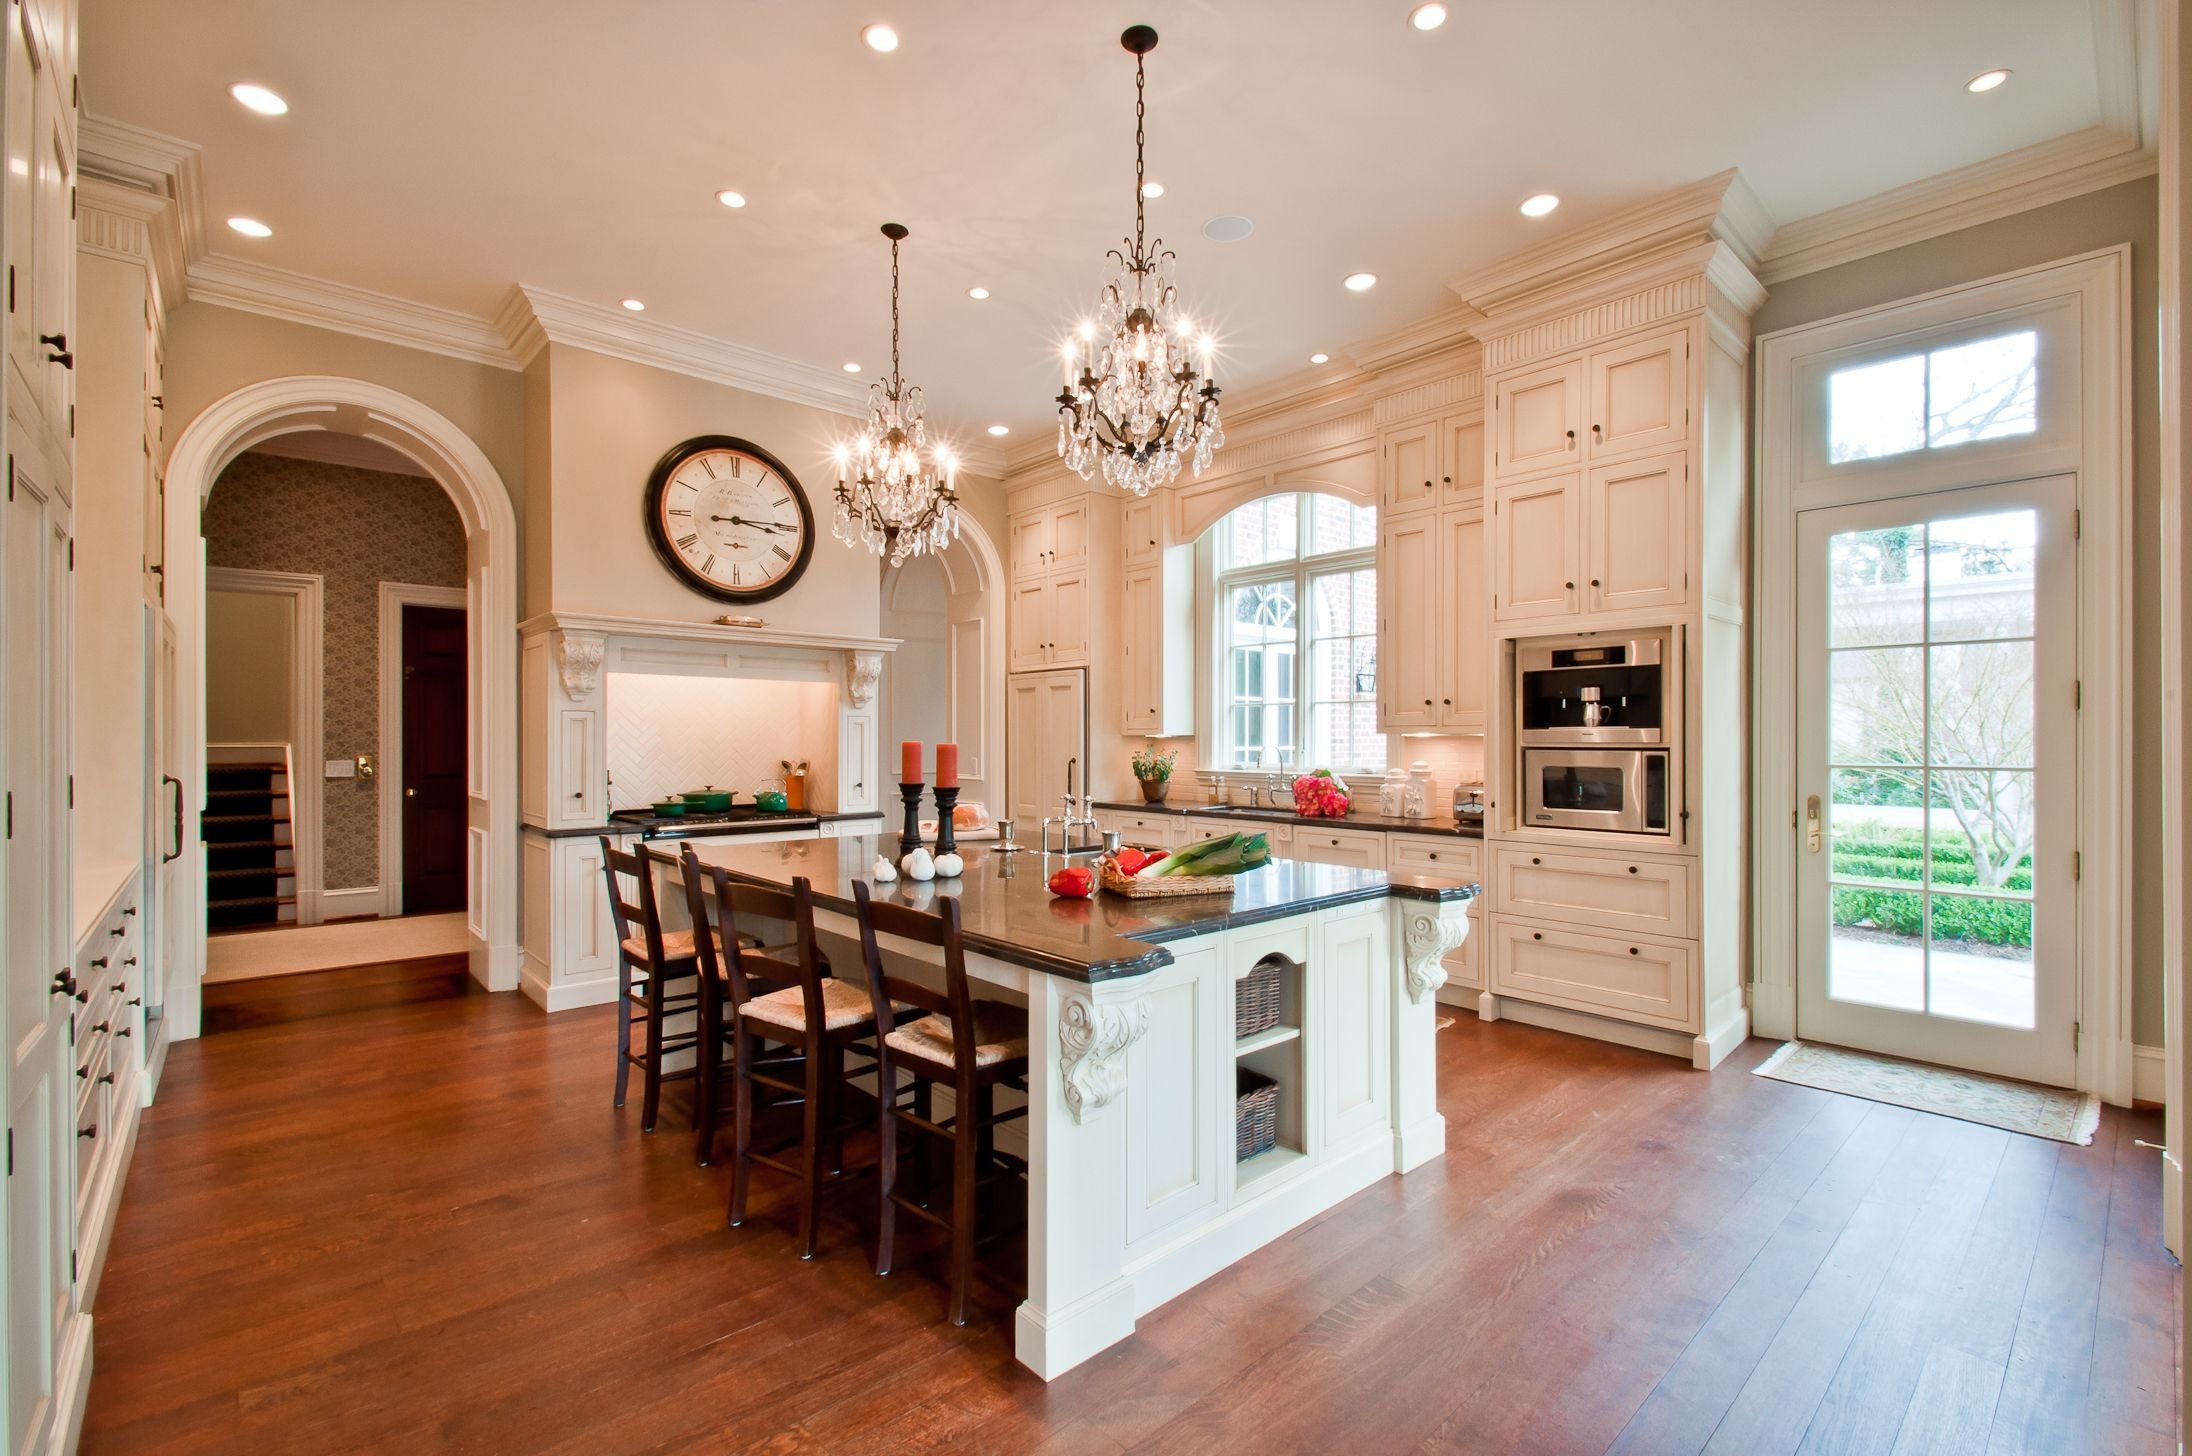 Pin By Brooke Allen On Cook Beautiful Kitchens House Design Home Kitchens